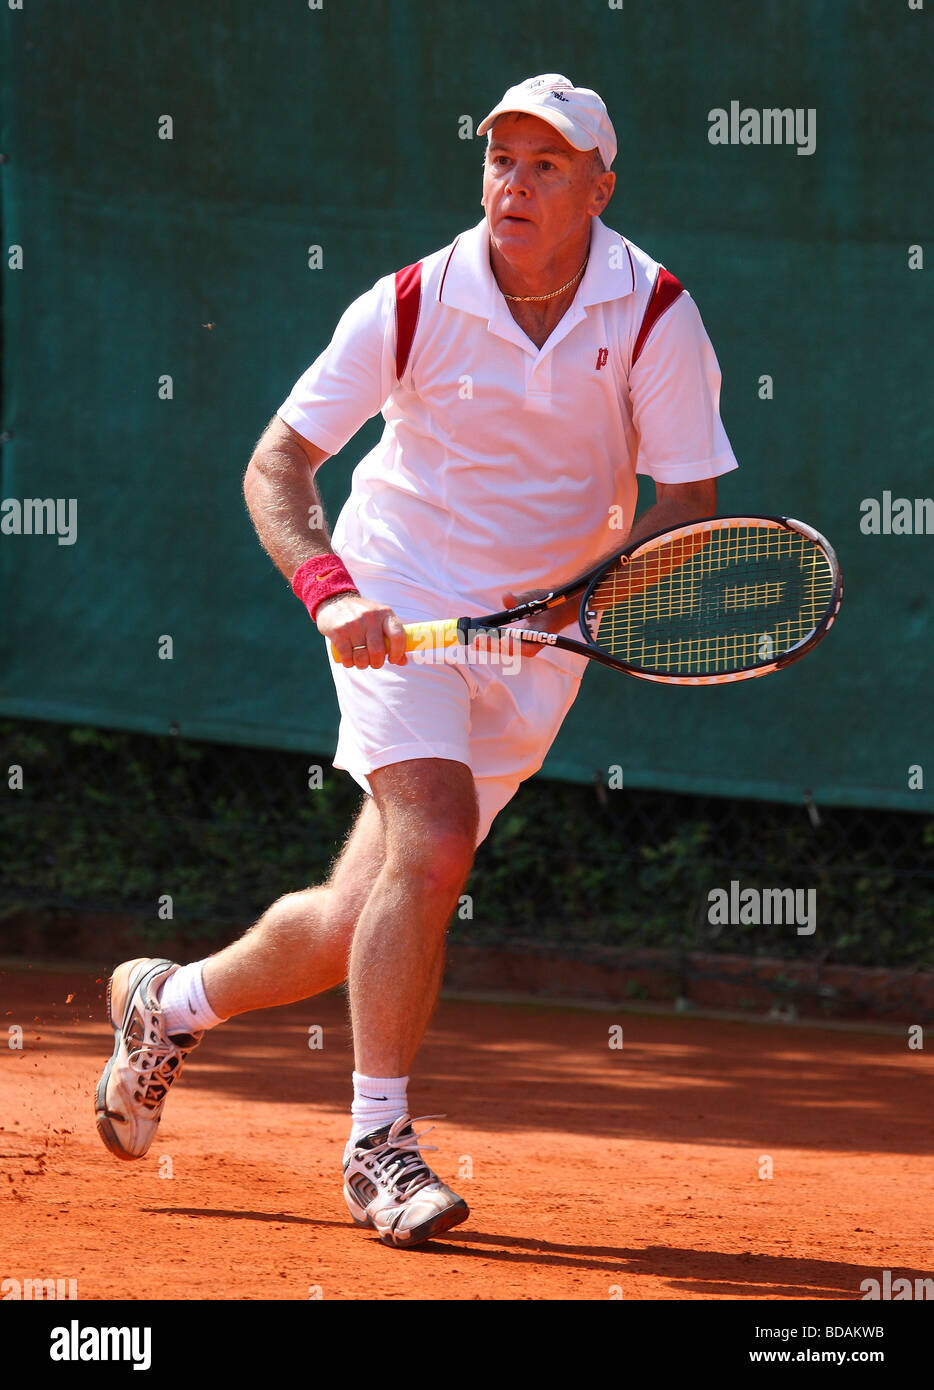 Elderly man playing a backhand at a tennis tournament - Stock Image